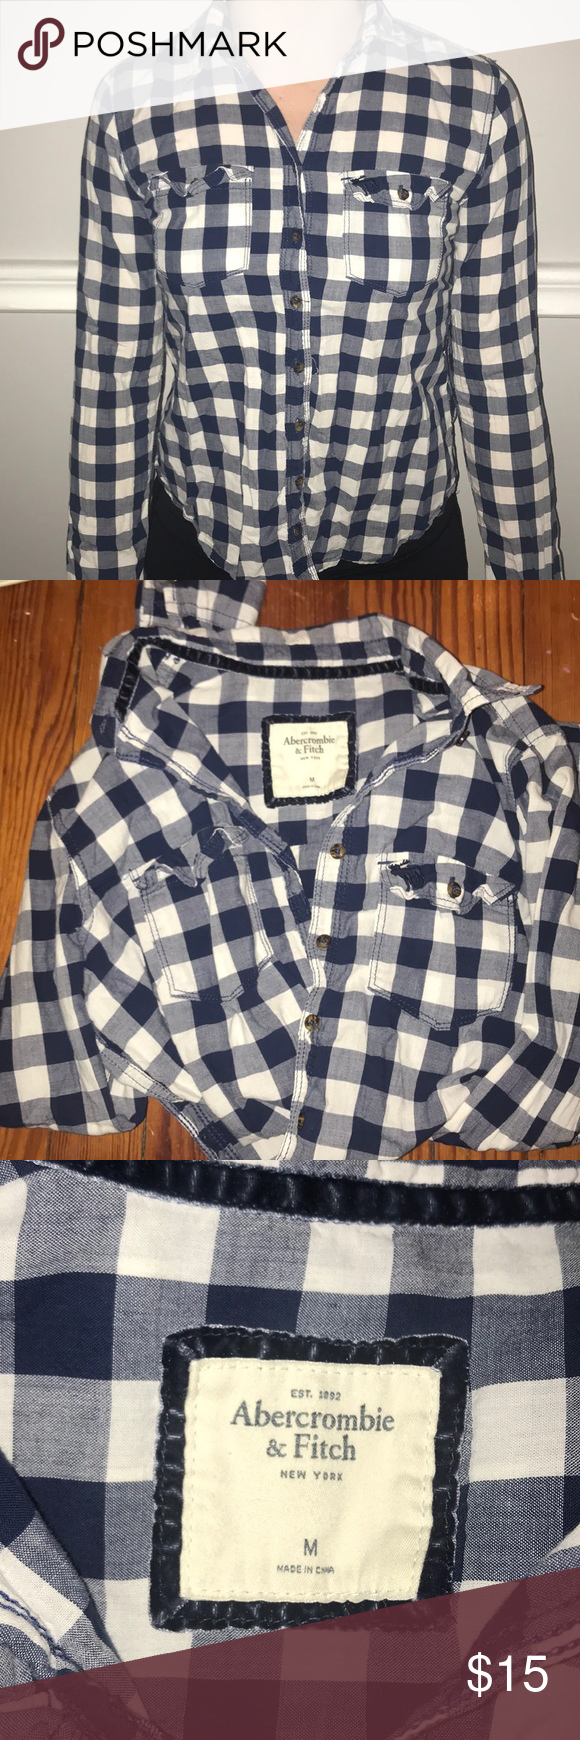 Flannel with shirt underneath  Abercrombie and Fitch Buttoned Flannel  Flannels Abercrombie fitch